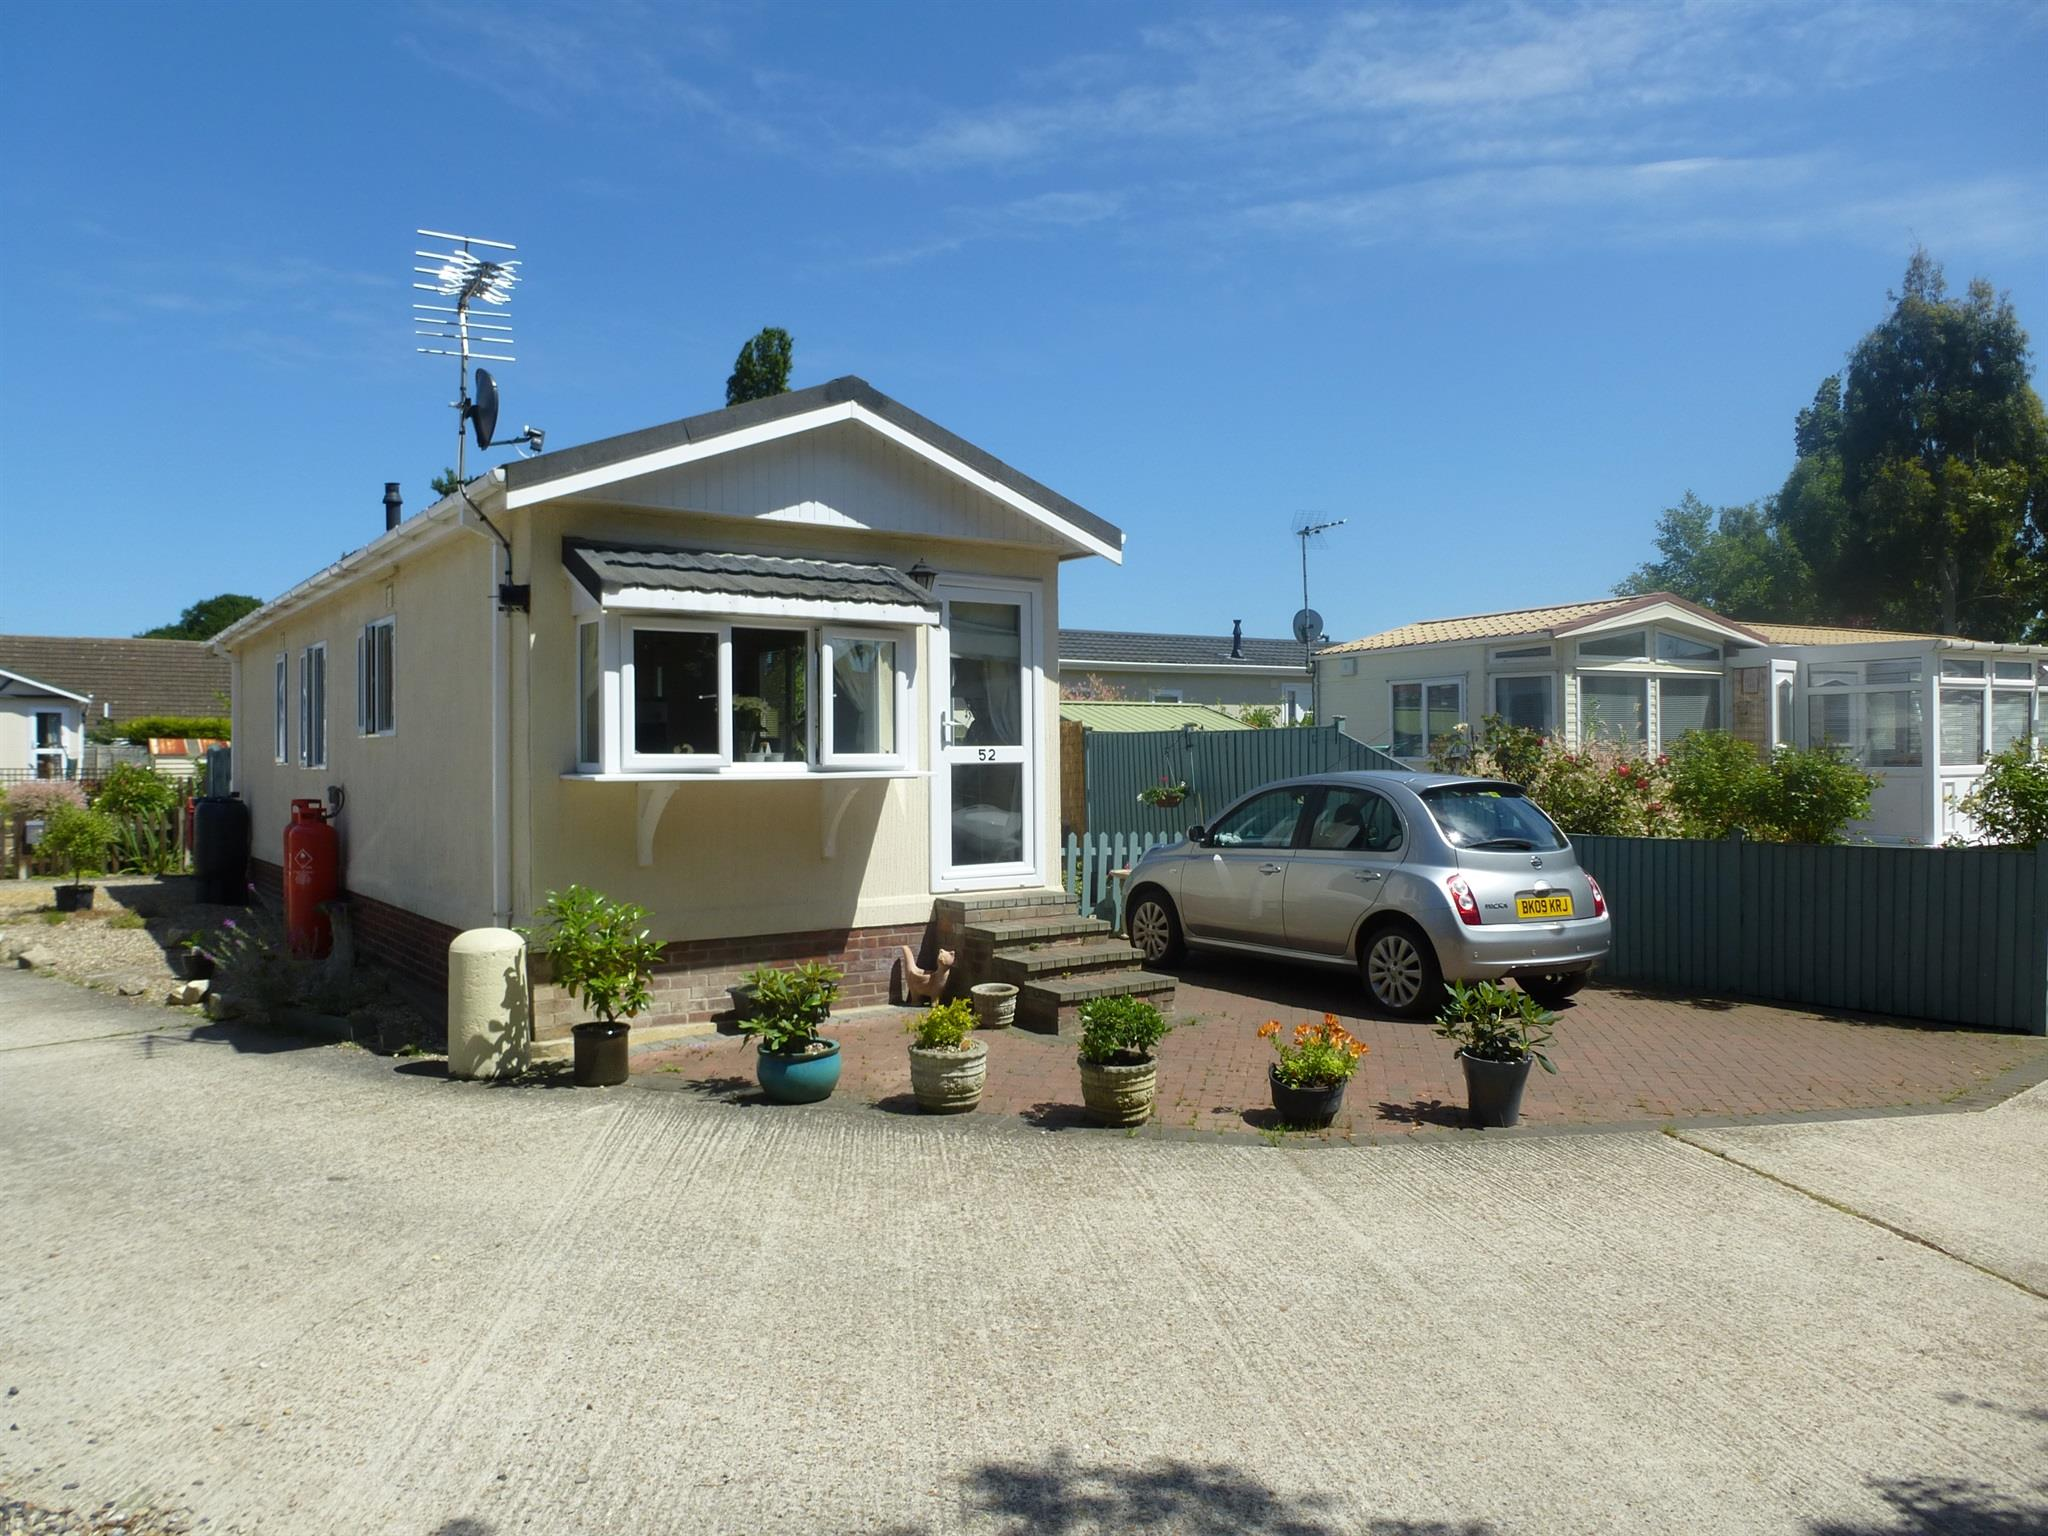 Property For Rent In Norfolk Broads